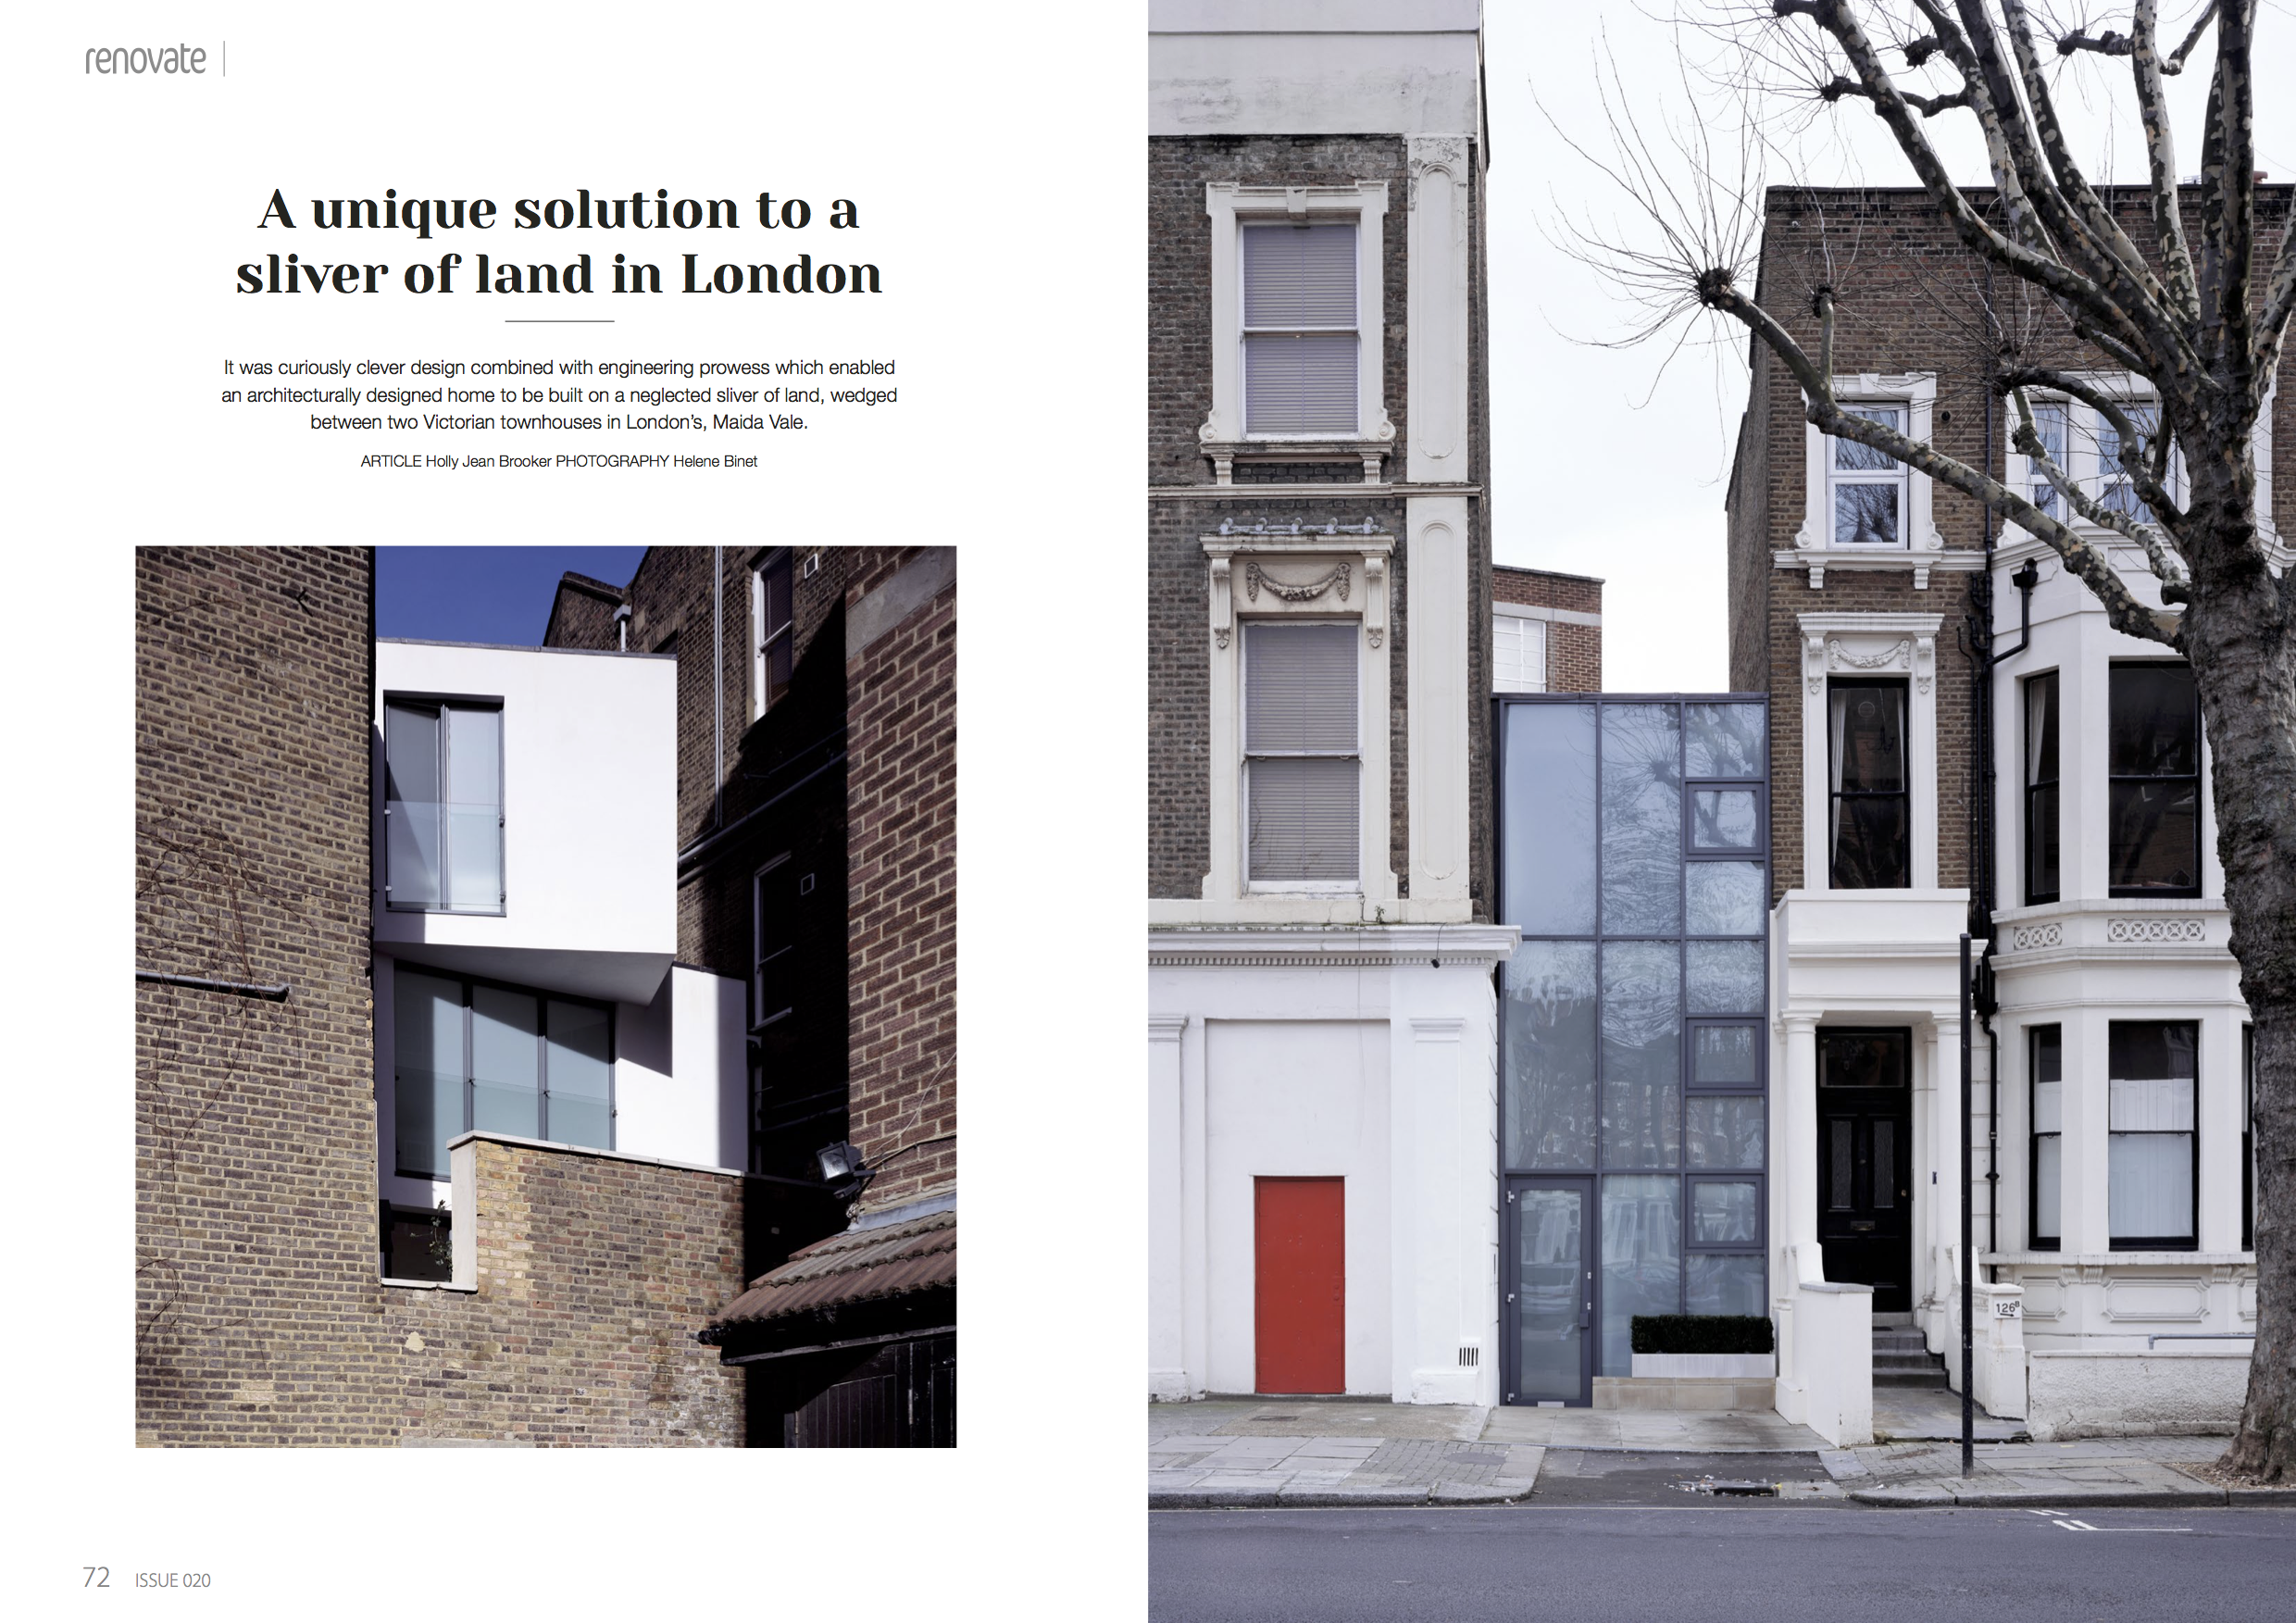 - Renovate Magazine 2017It was curiously clever design combined with engineering prowess which enabled an architecturally designed home to be built on a neglected sliver of land, wedged between two Victorian townhouses in London's, Maida Vale.Words by Holly Jean BrookerPhotography by Helene Binet